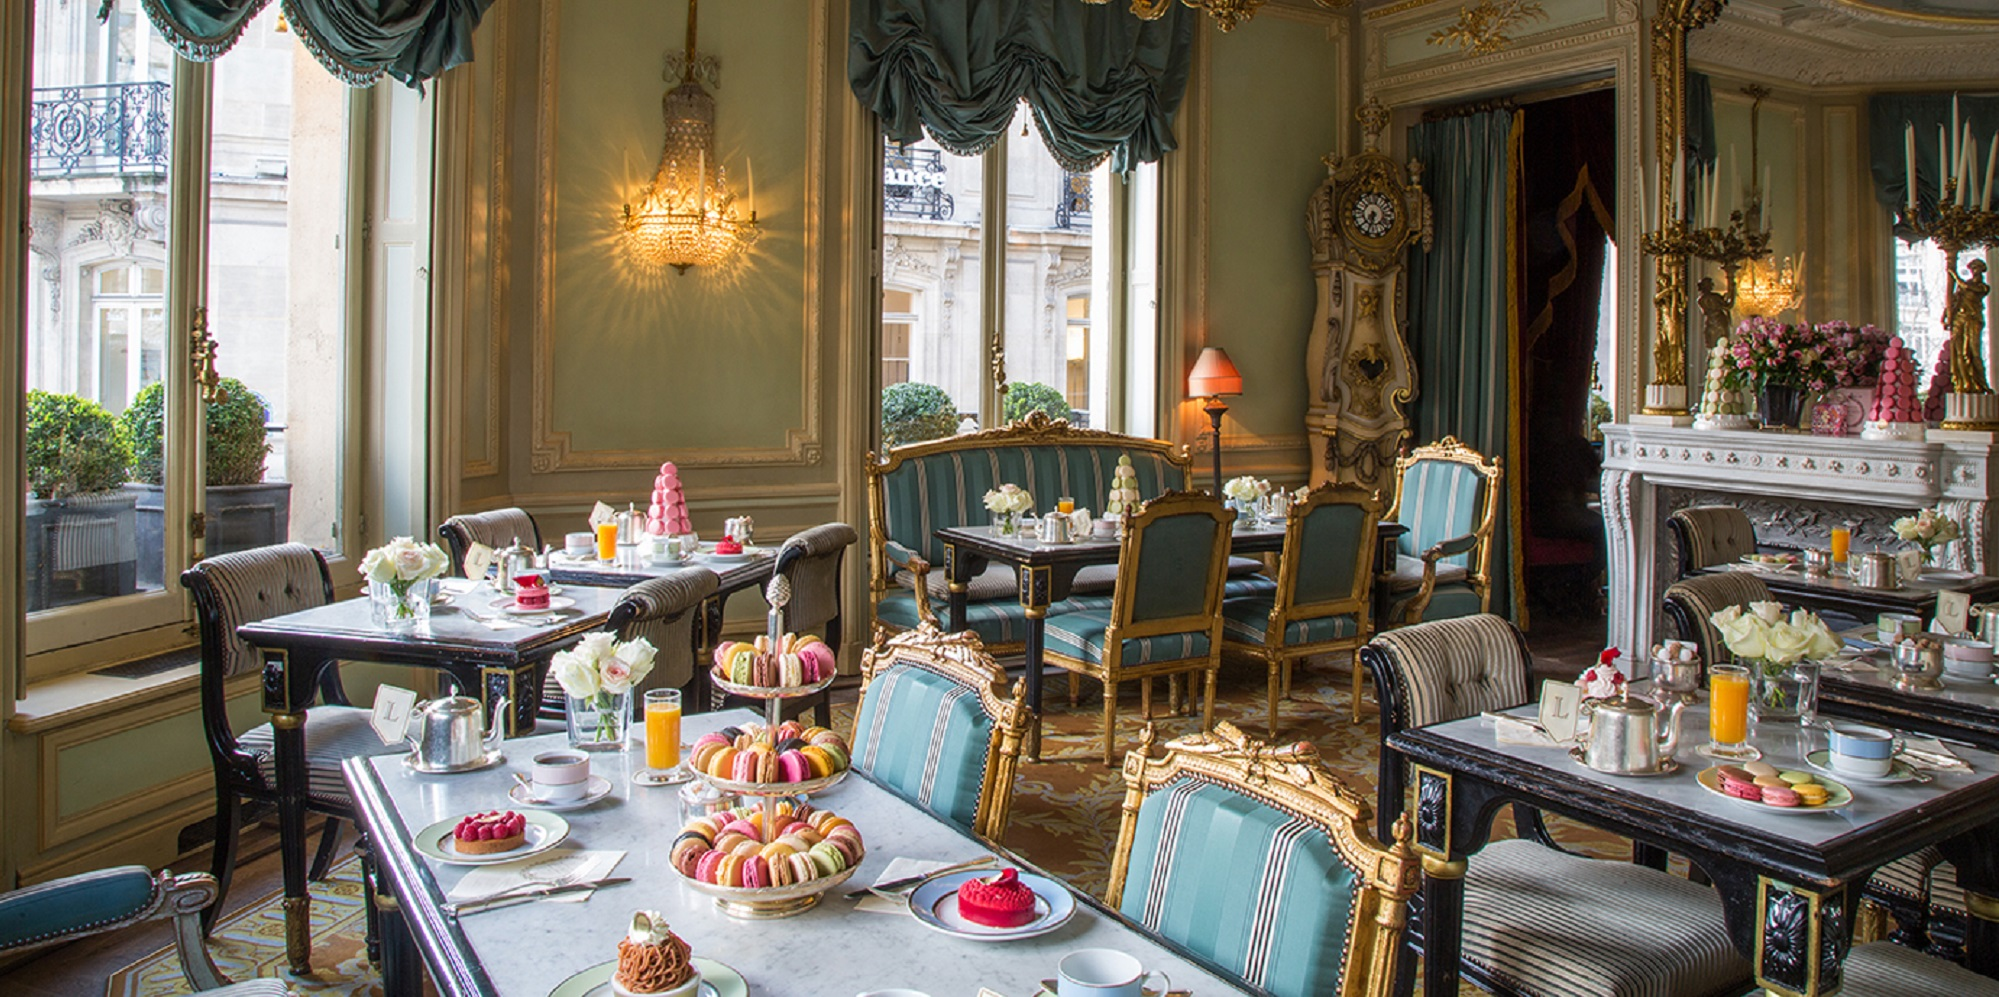 Brunch Ladure ChampsElyses 75008 Paris  OuBruncher